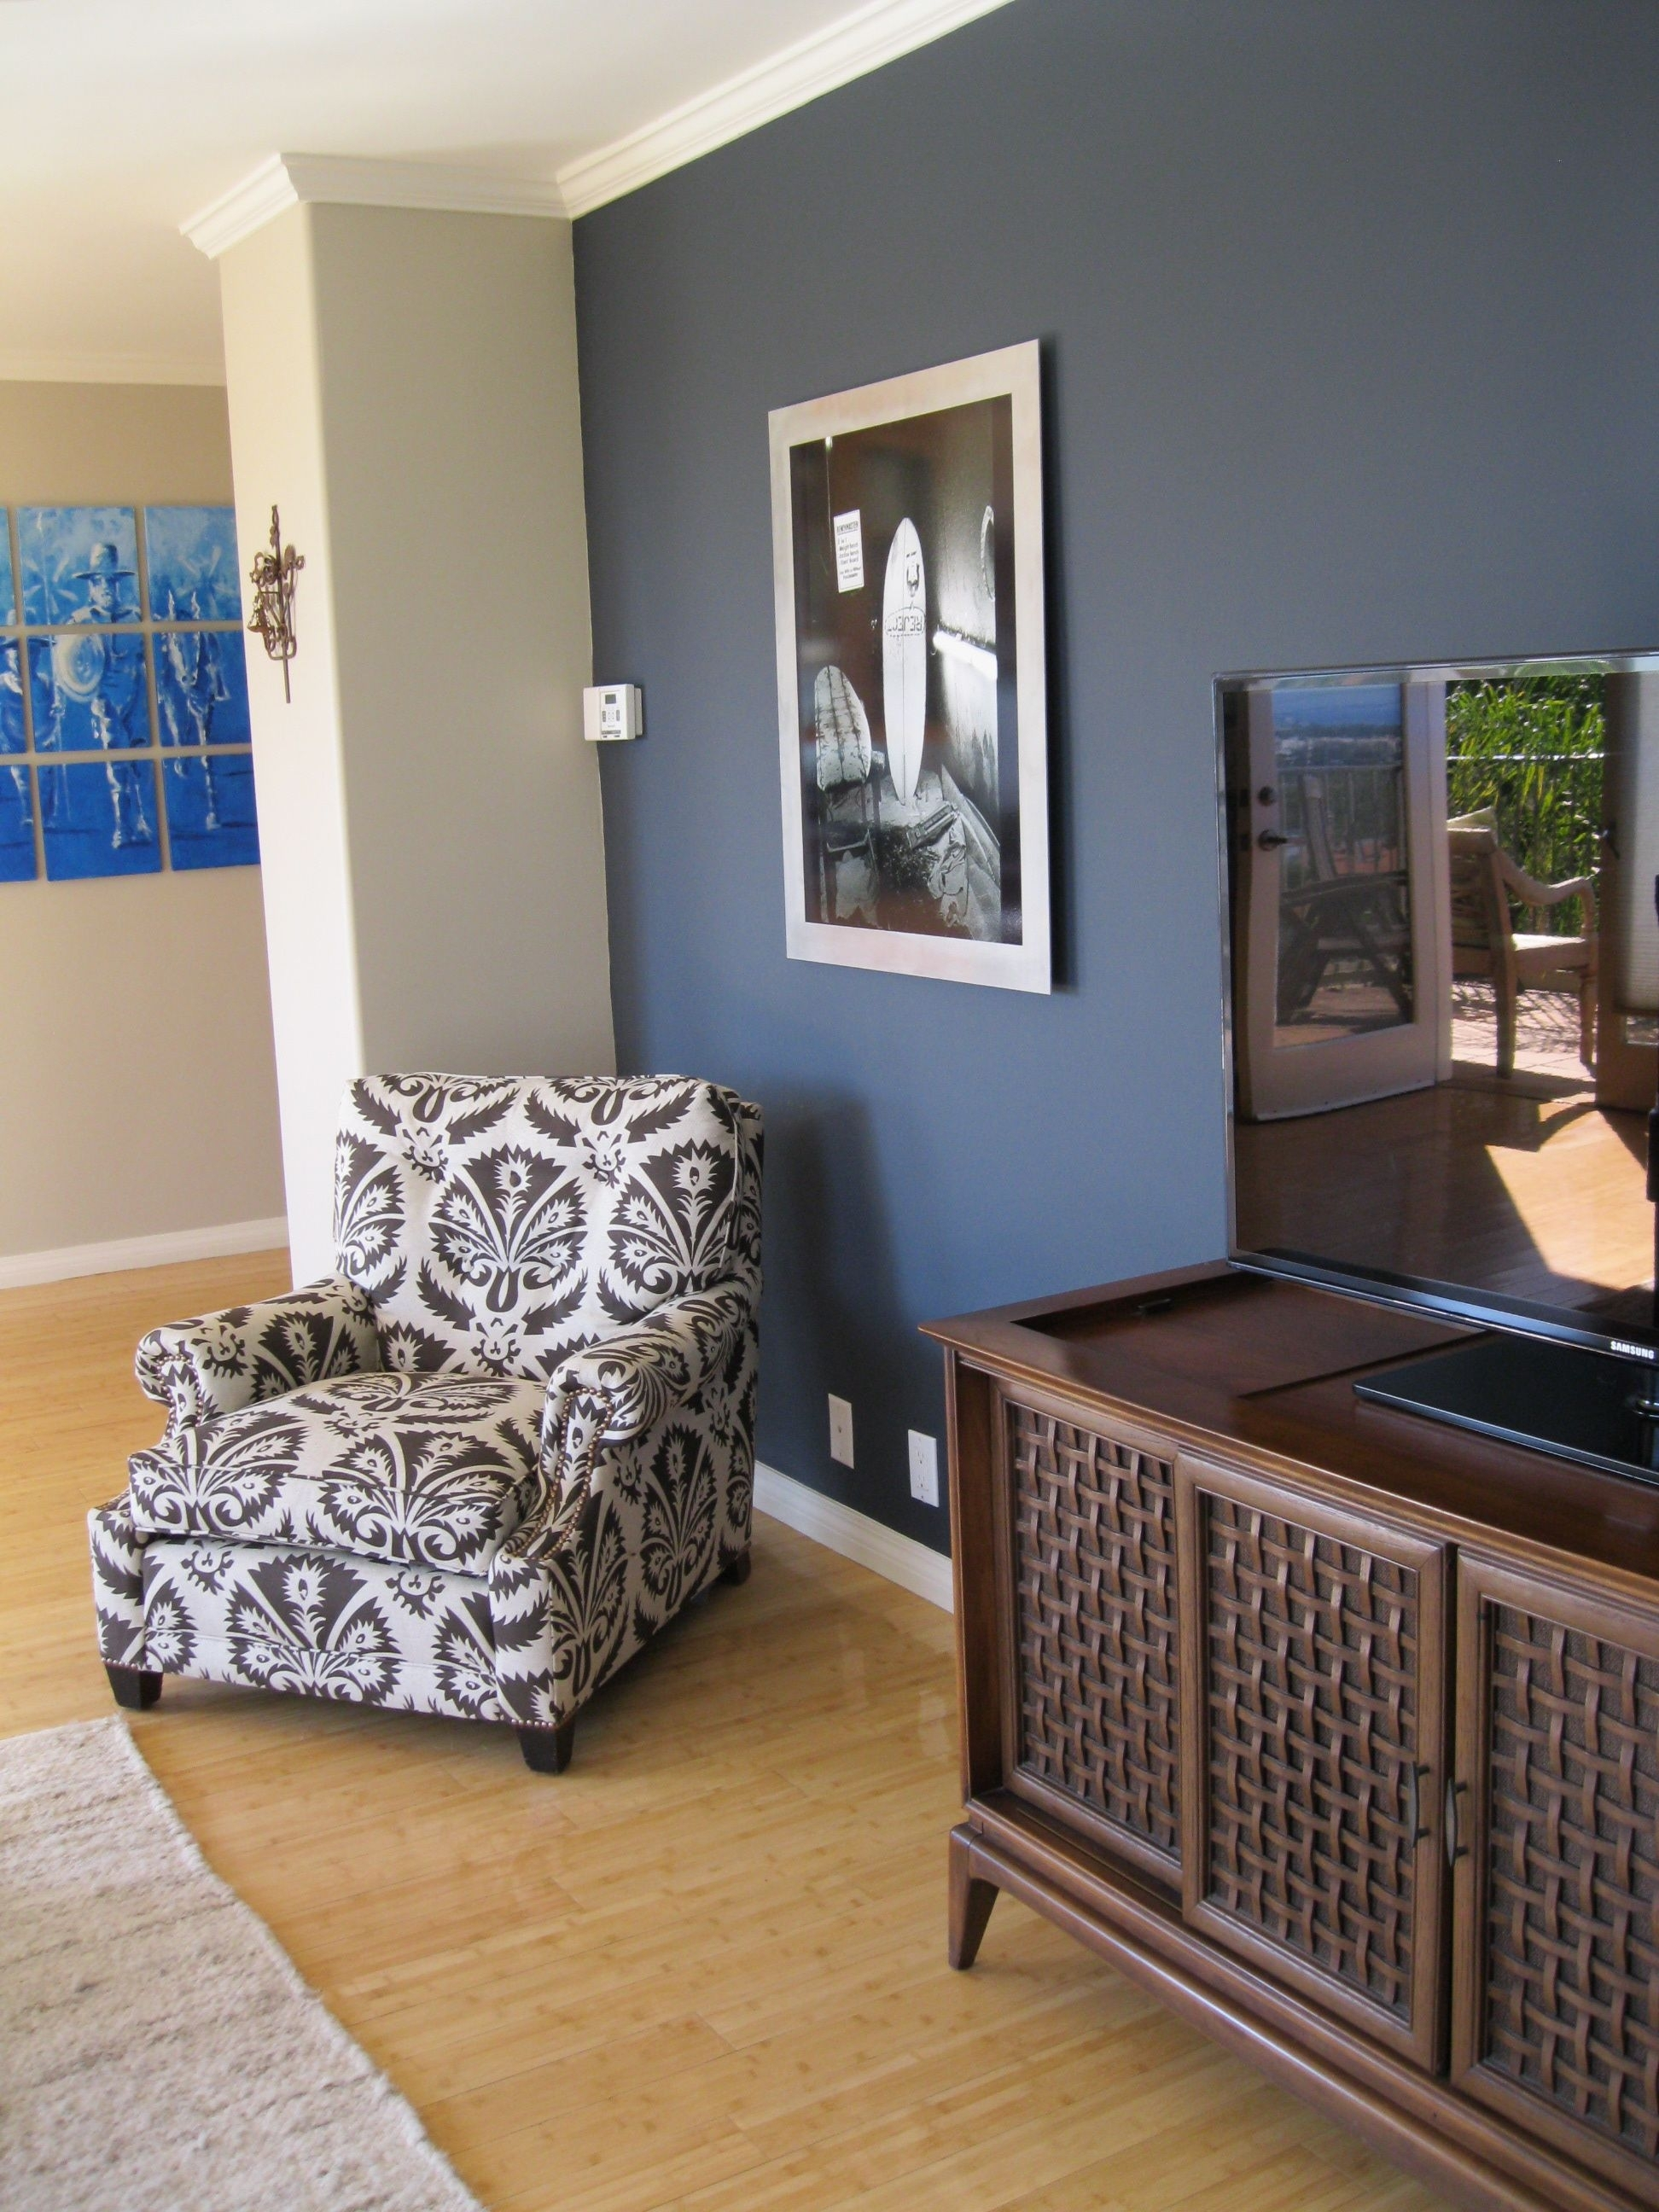 Shade Of Blue On Wall Camoflauges Tv. Love The Chair Too! | Home Pertaining To 2018 Wall Accents For Blue Room (Gallery 2 of 15)